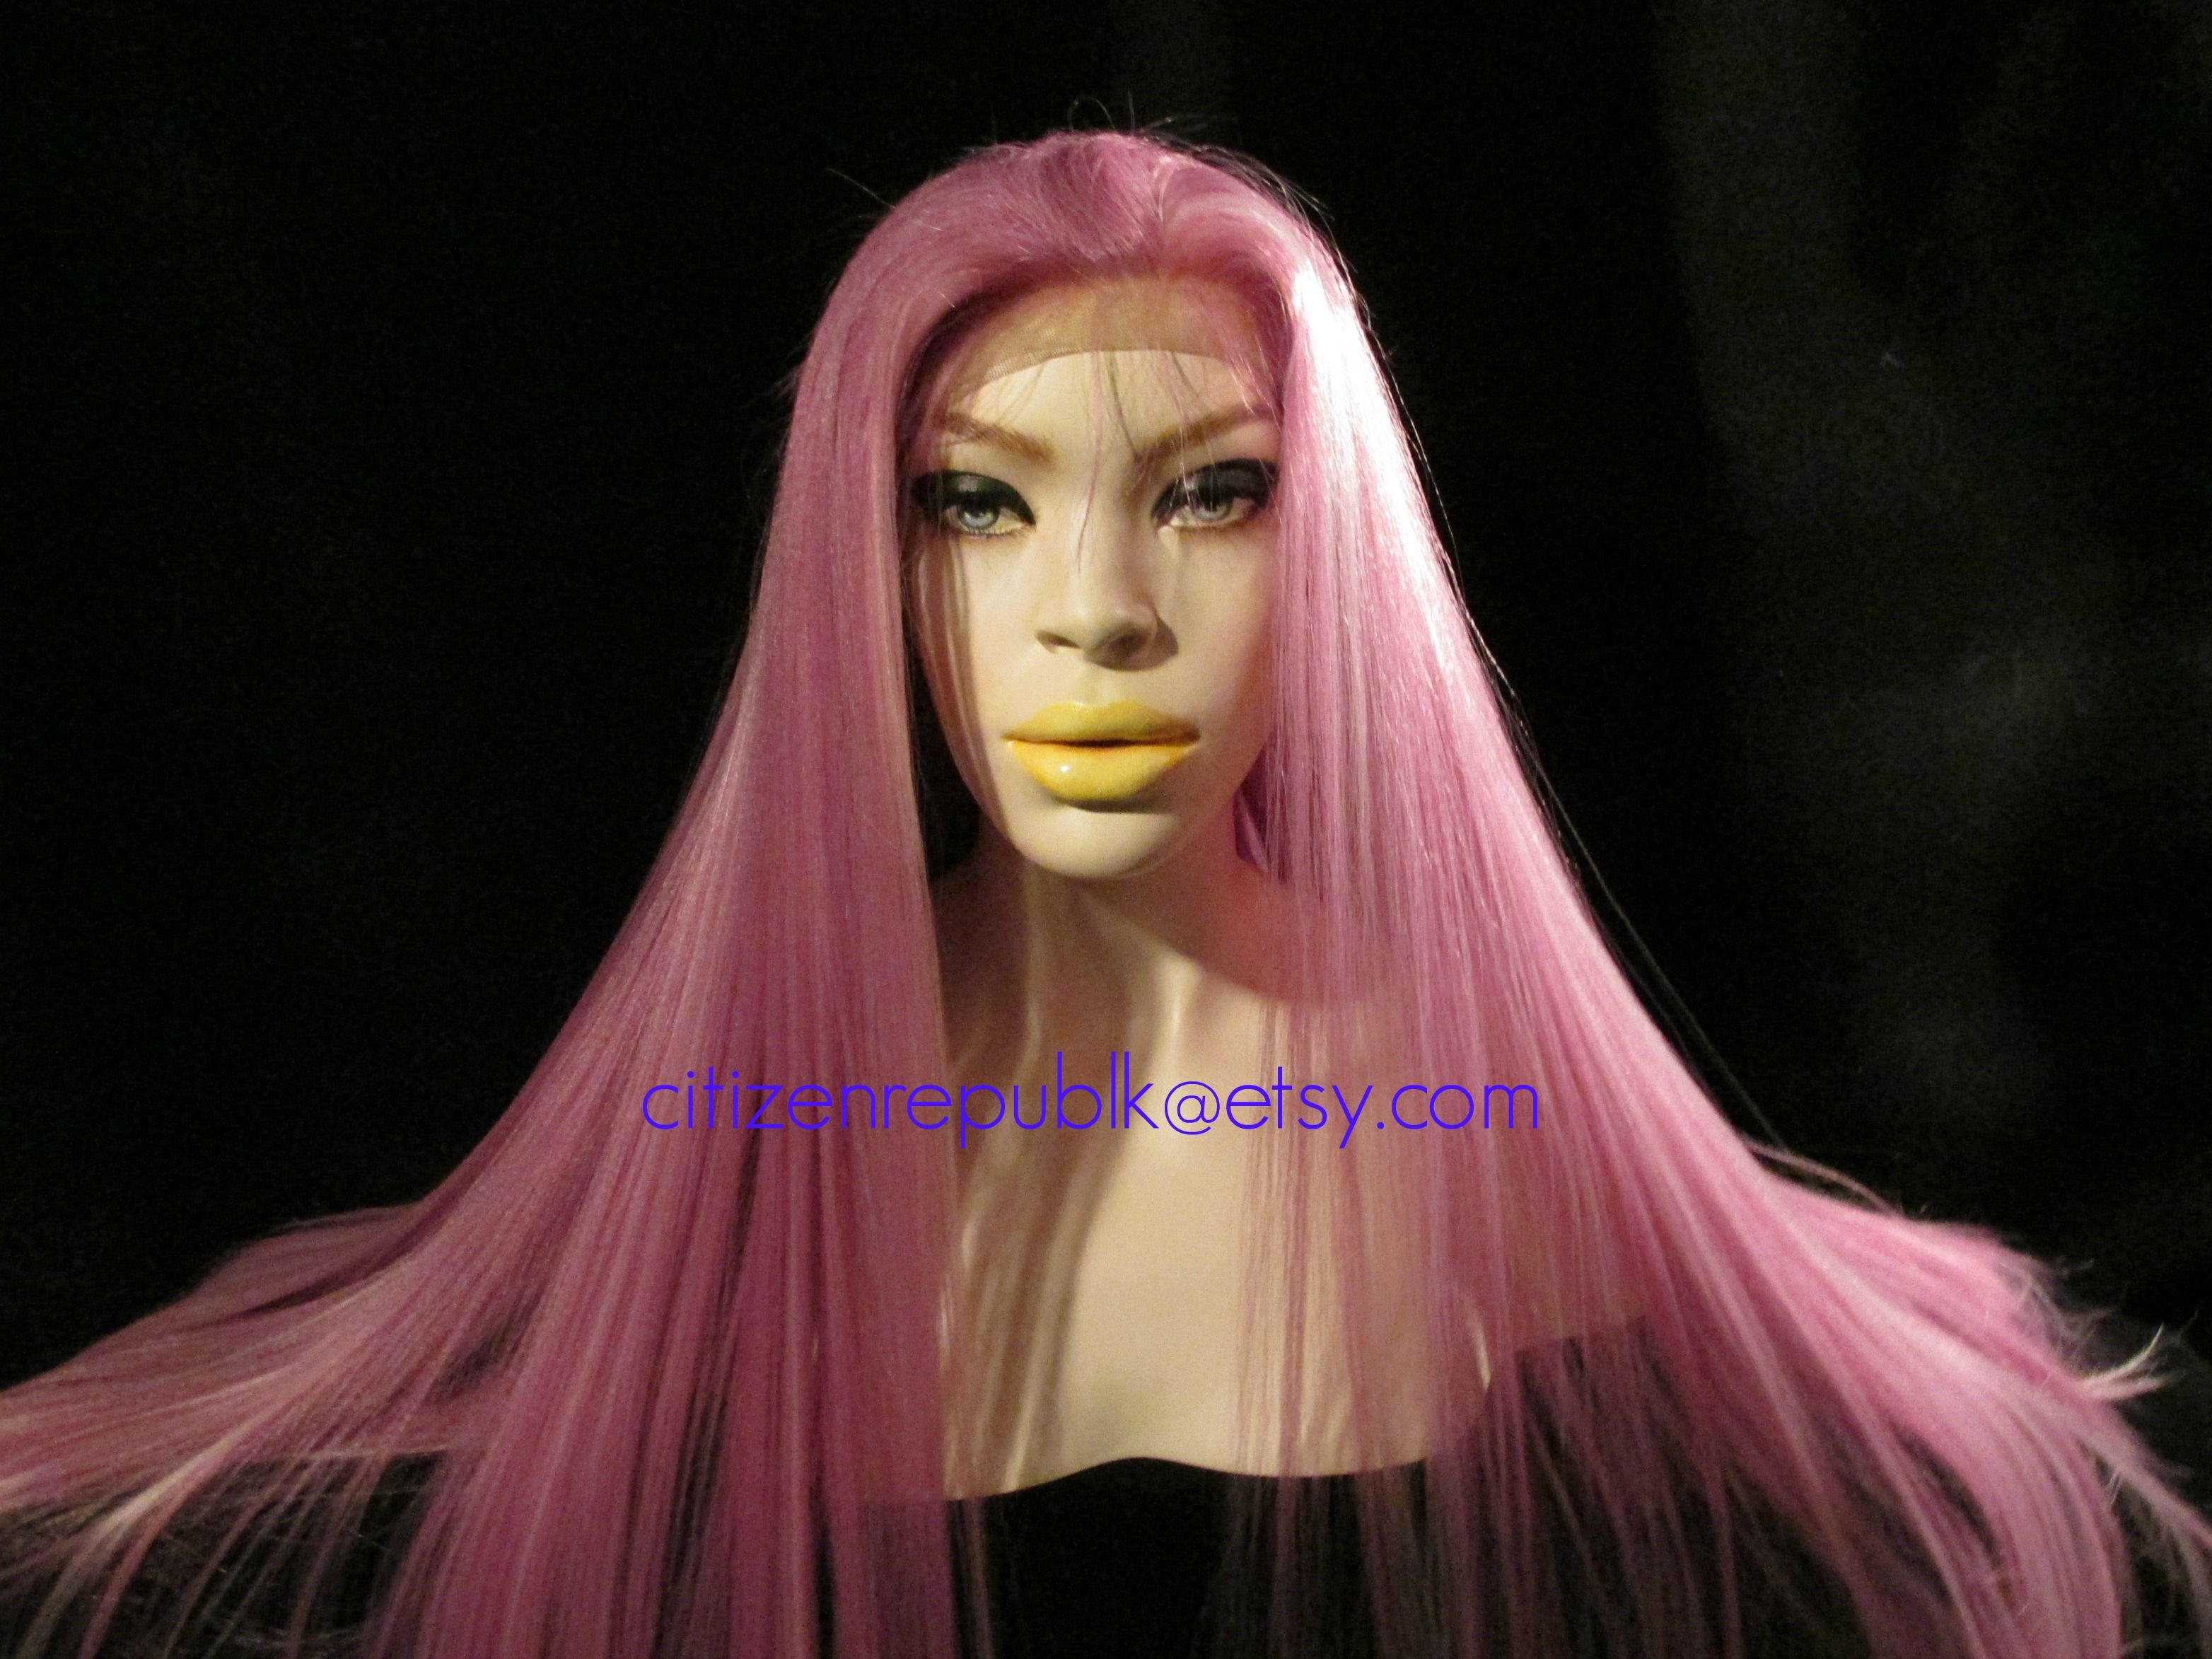 beautiful pink hair. hair is multifaceted. pictures do her no justice. www.citizenrepublk.etsy.com